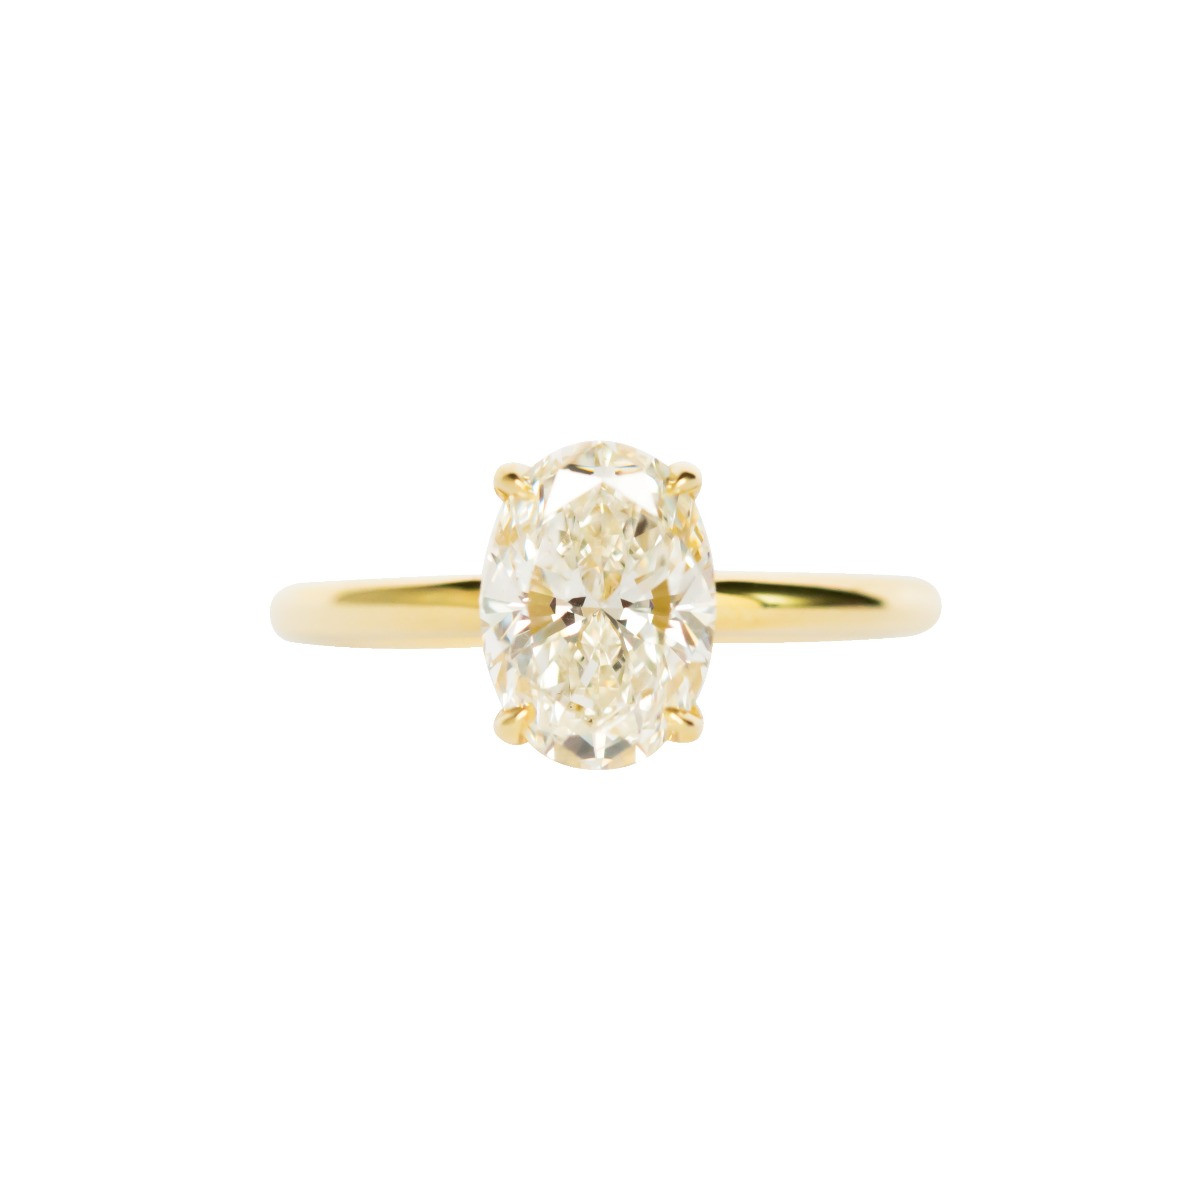 Oval Solitaire Setting With Diamond Basket In Yellow Gold